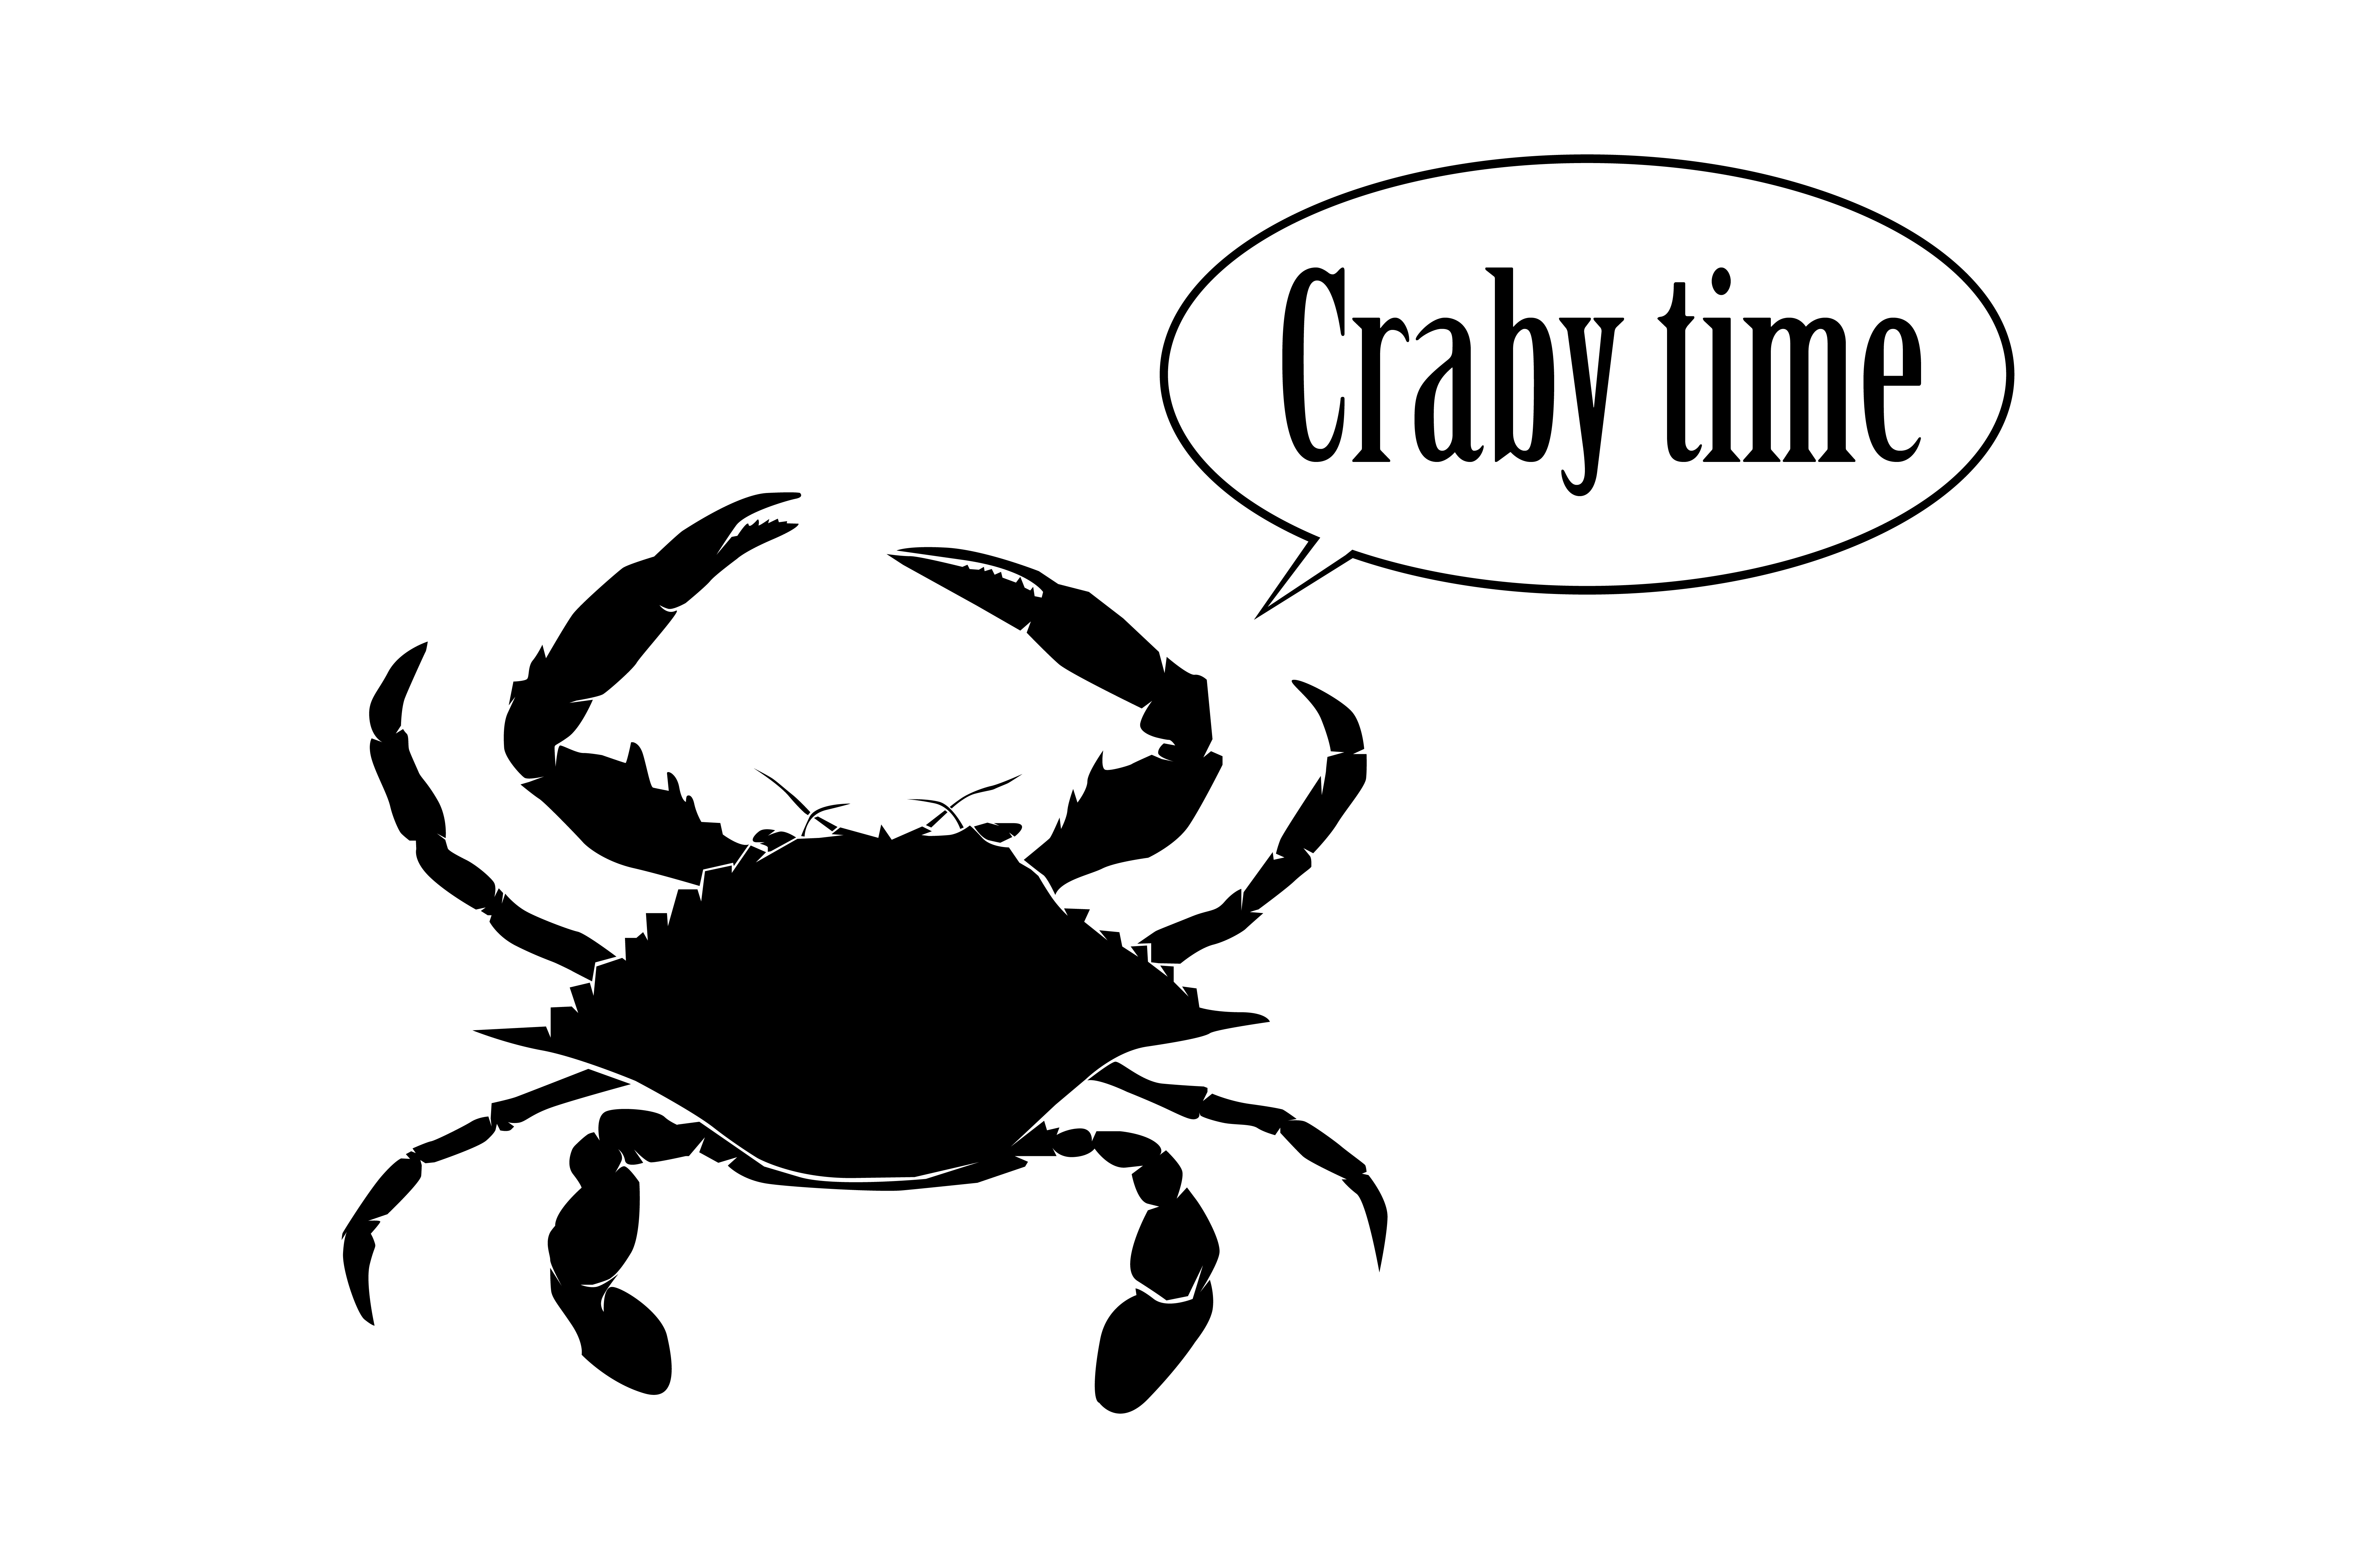 Download Free Crab Design Craft Graphic By Rfg Creative Fabrica for Cricut Explore, Silhouette and other cutting machines.